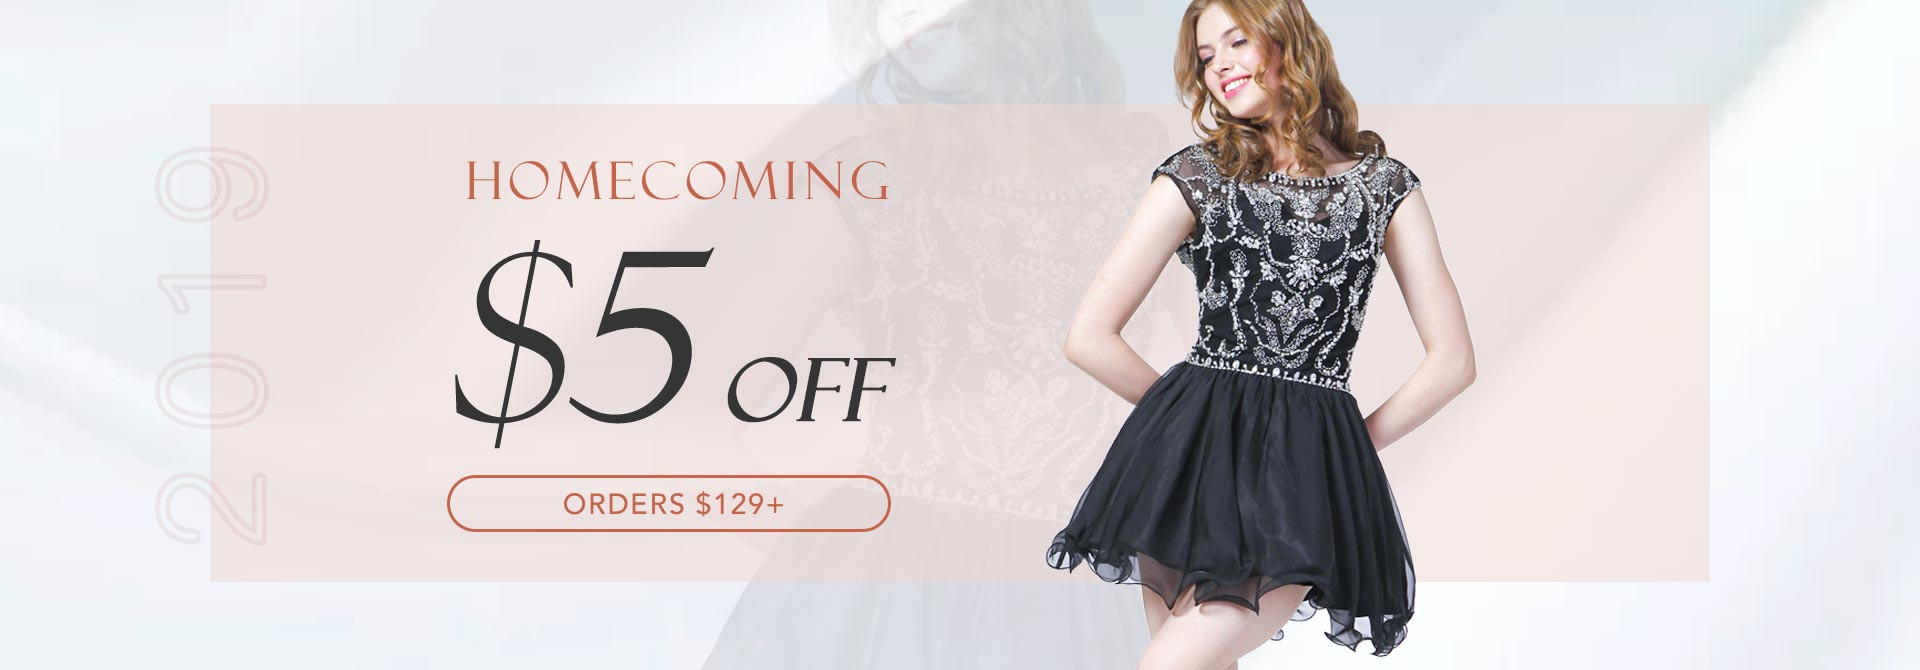 Get $5 OFF for homecoming dress orders over $129